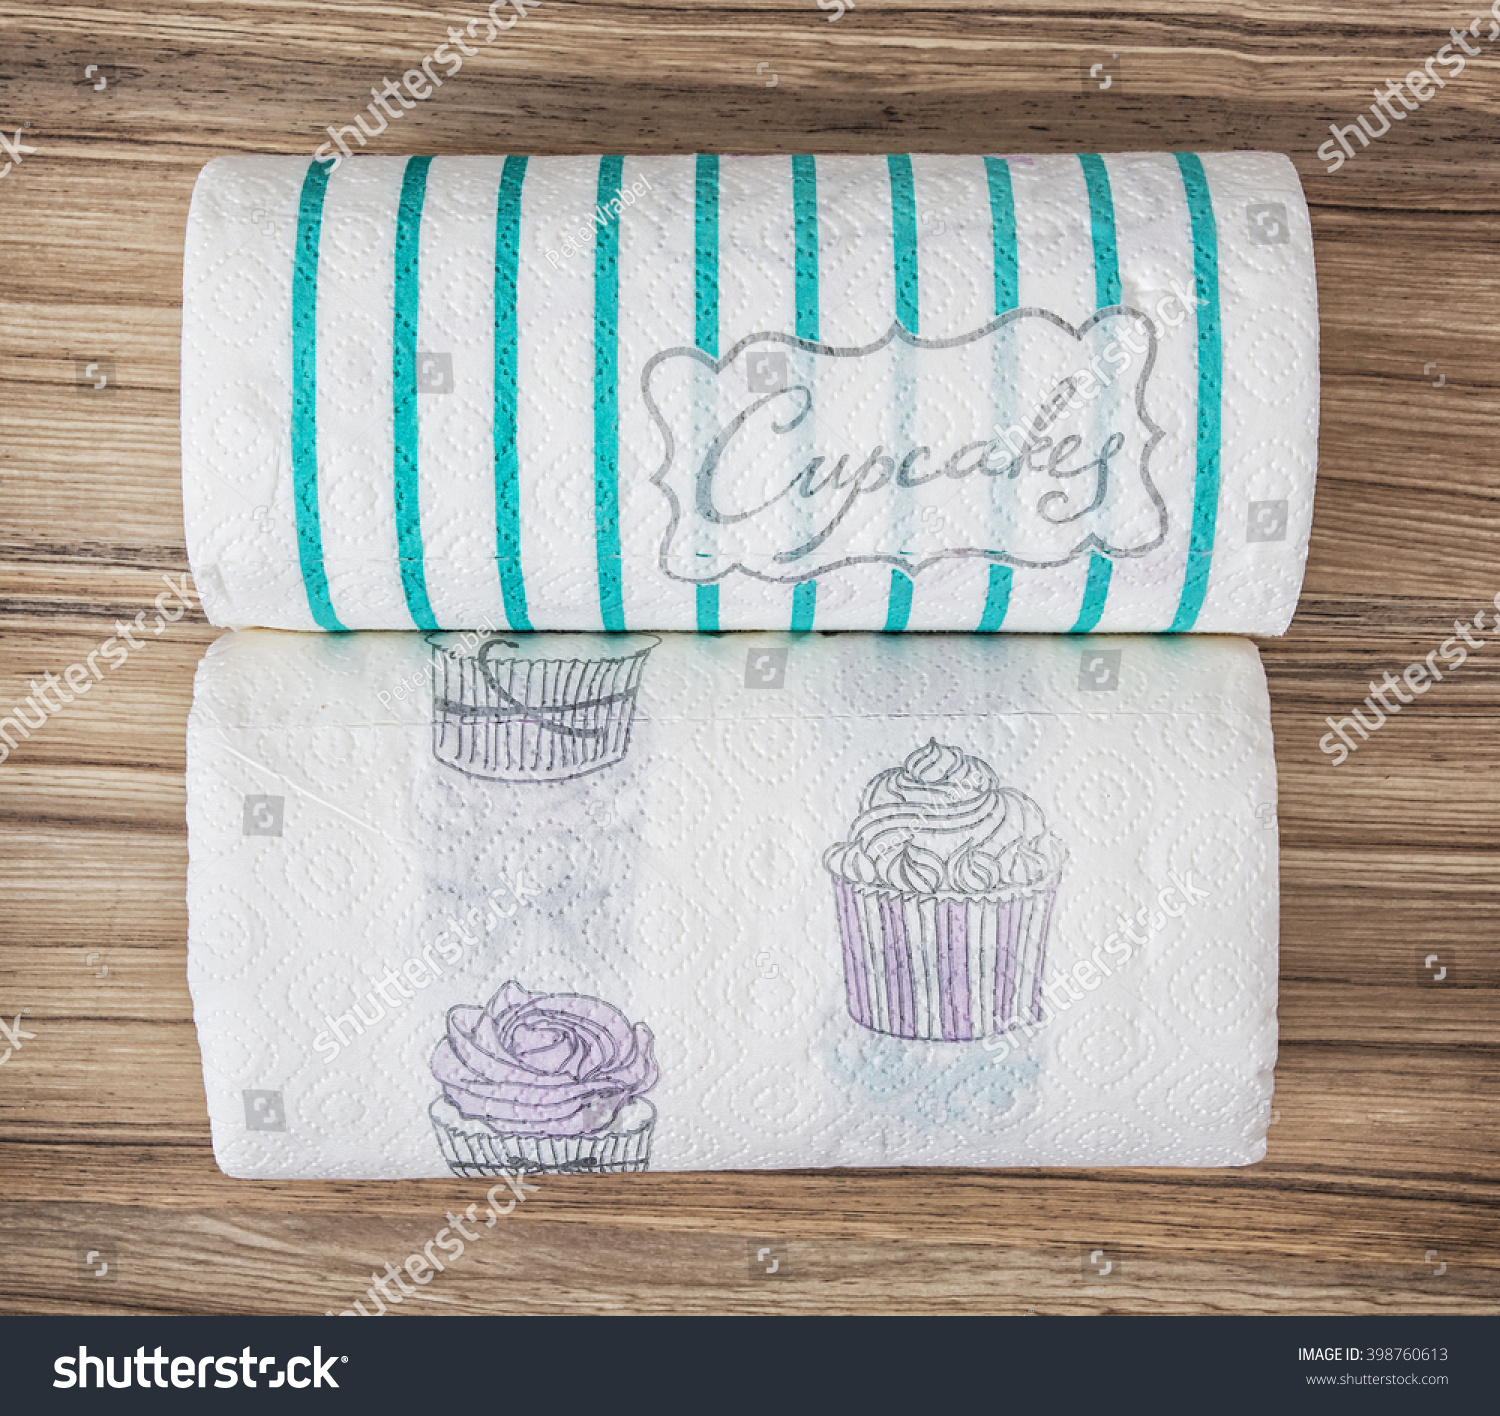 Two decorative kitchen paper towel rolls stock photo for Decorative paper rolls